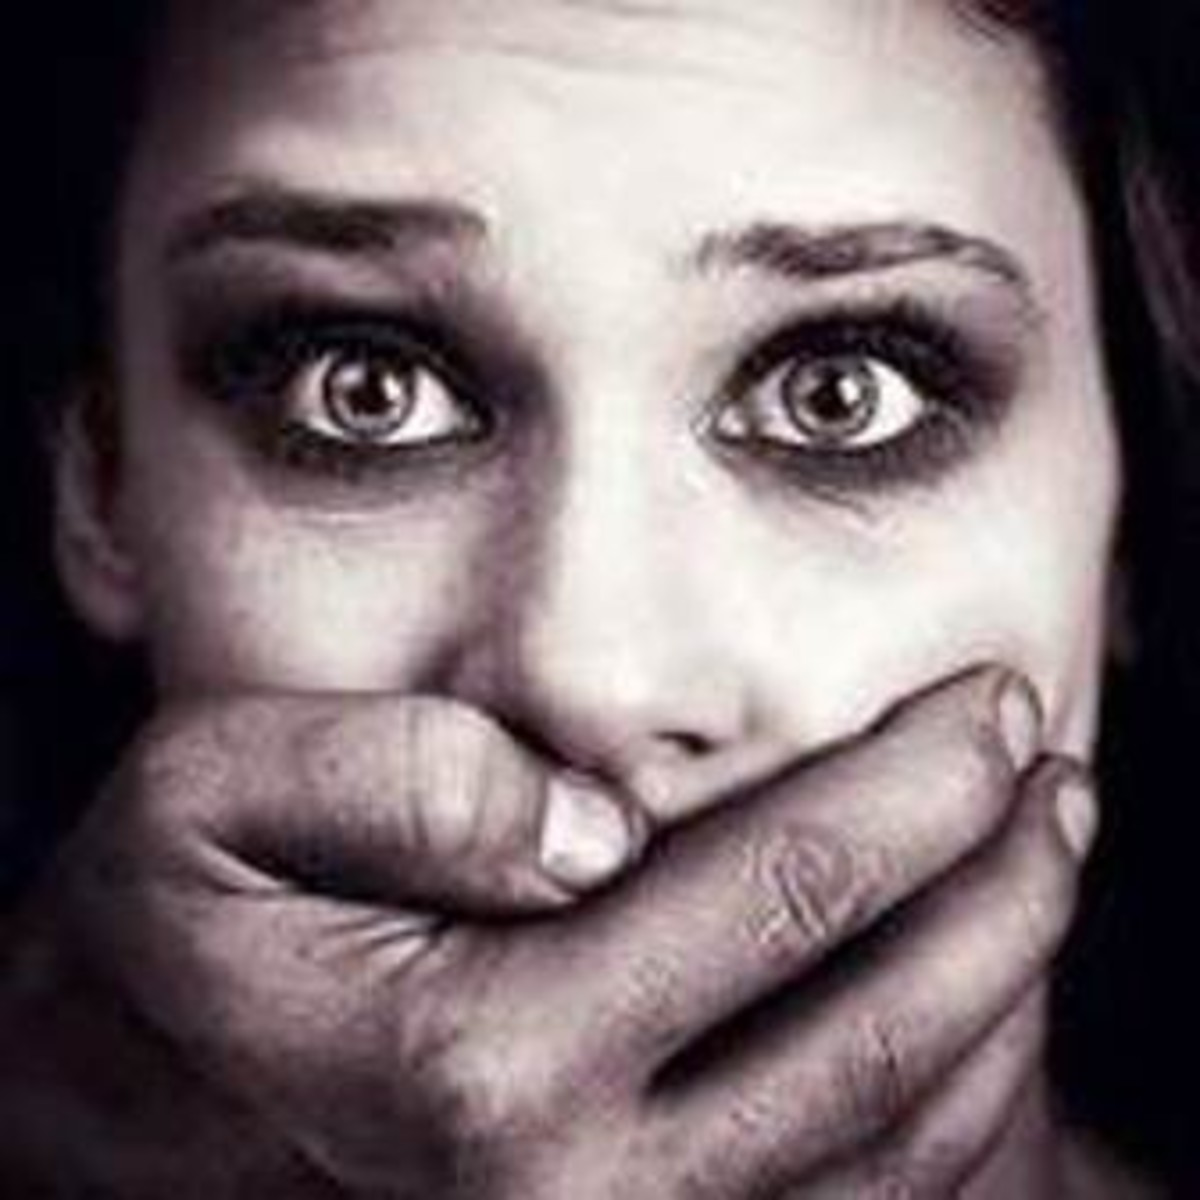 (2012, July 8). Advice on Healing From Trauma: Victims of Sexual Abuse [Web Photo]. Retrieved from http://www.examiner.com/article/advice-on-healing-from-trauma-victims-of-sexual-abuse-and-assault